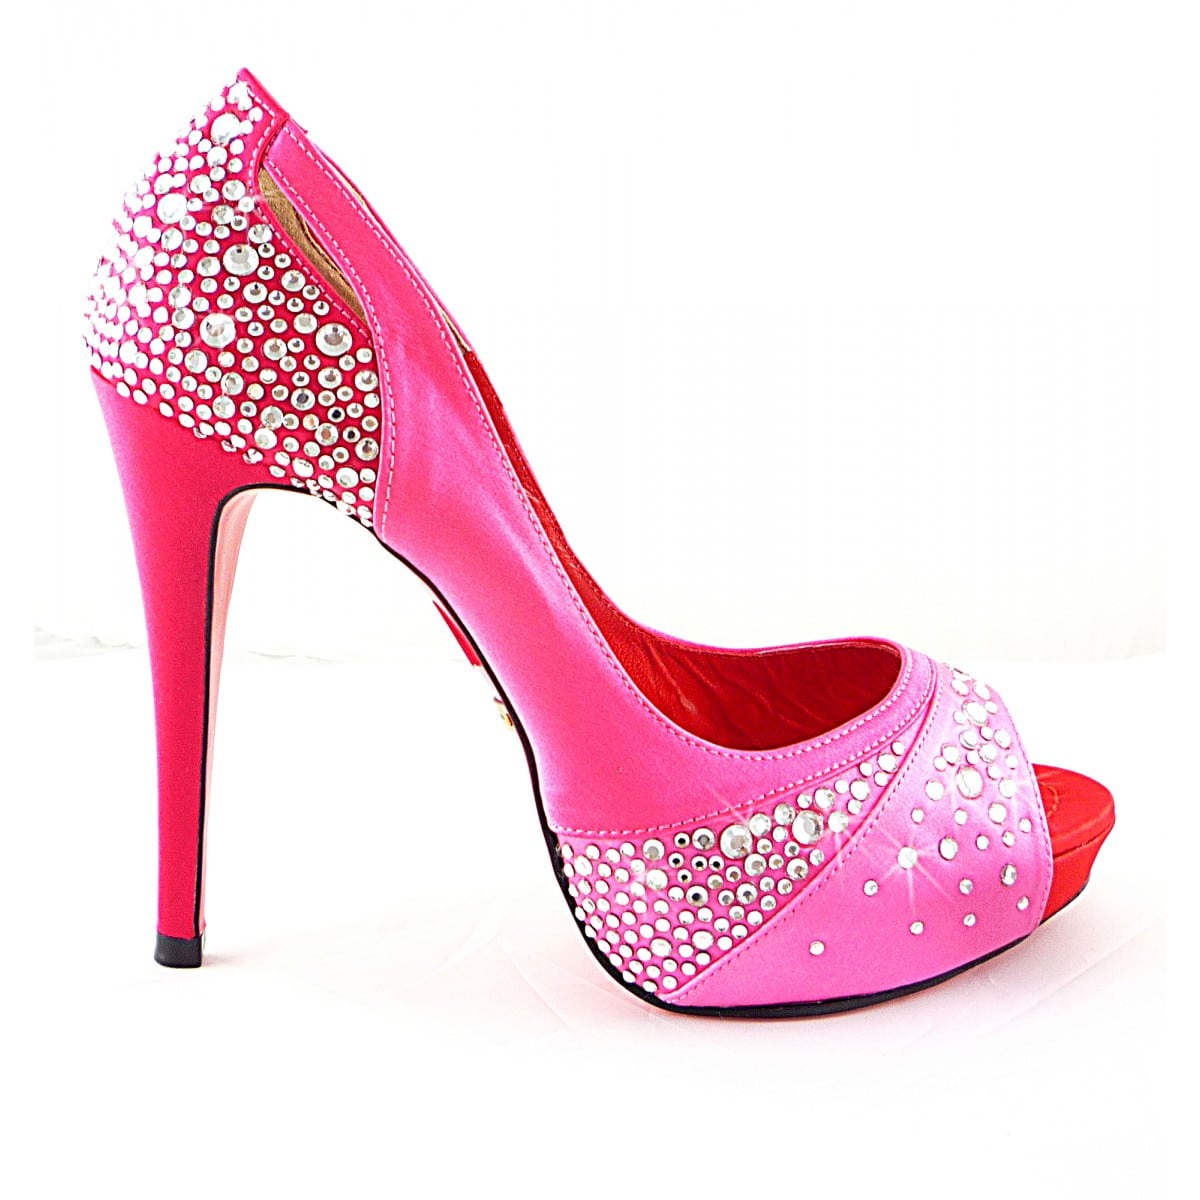 scb-pink-couture-crystal-peep-toe